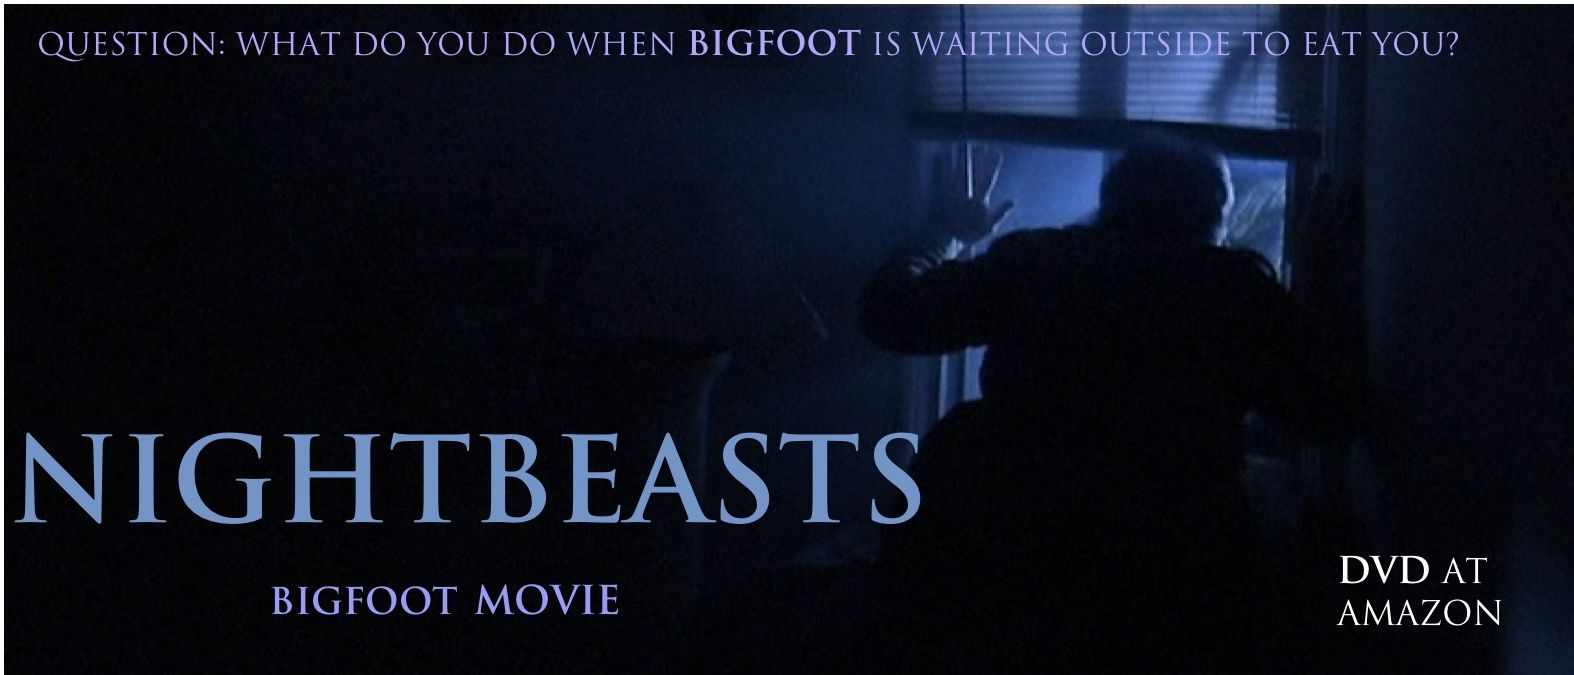 This awesome Bigfoot Sci-Fi Movie can be had on DVD for a LIMITED TIMEgoo.gl/A48lFf